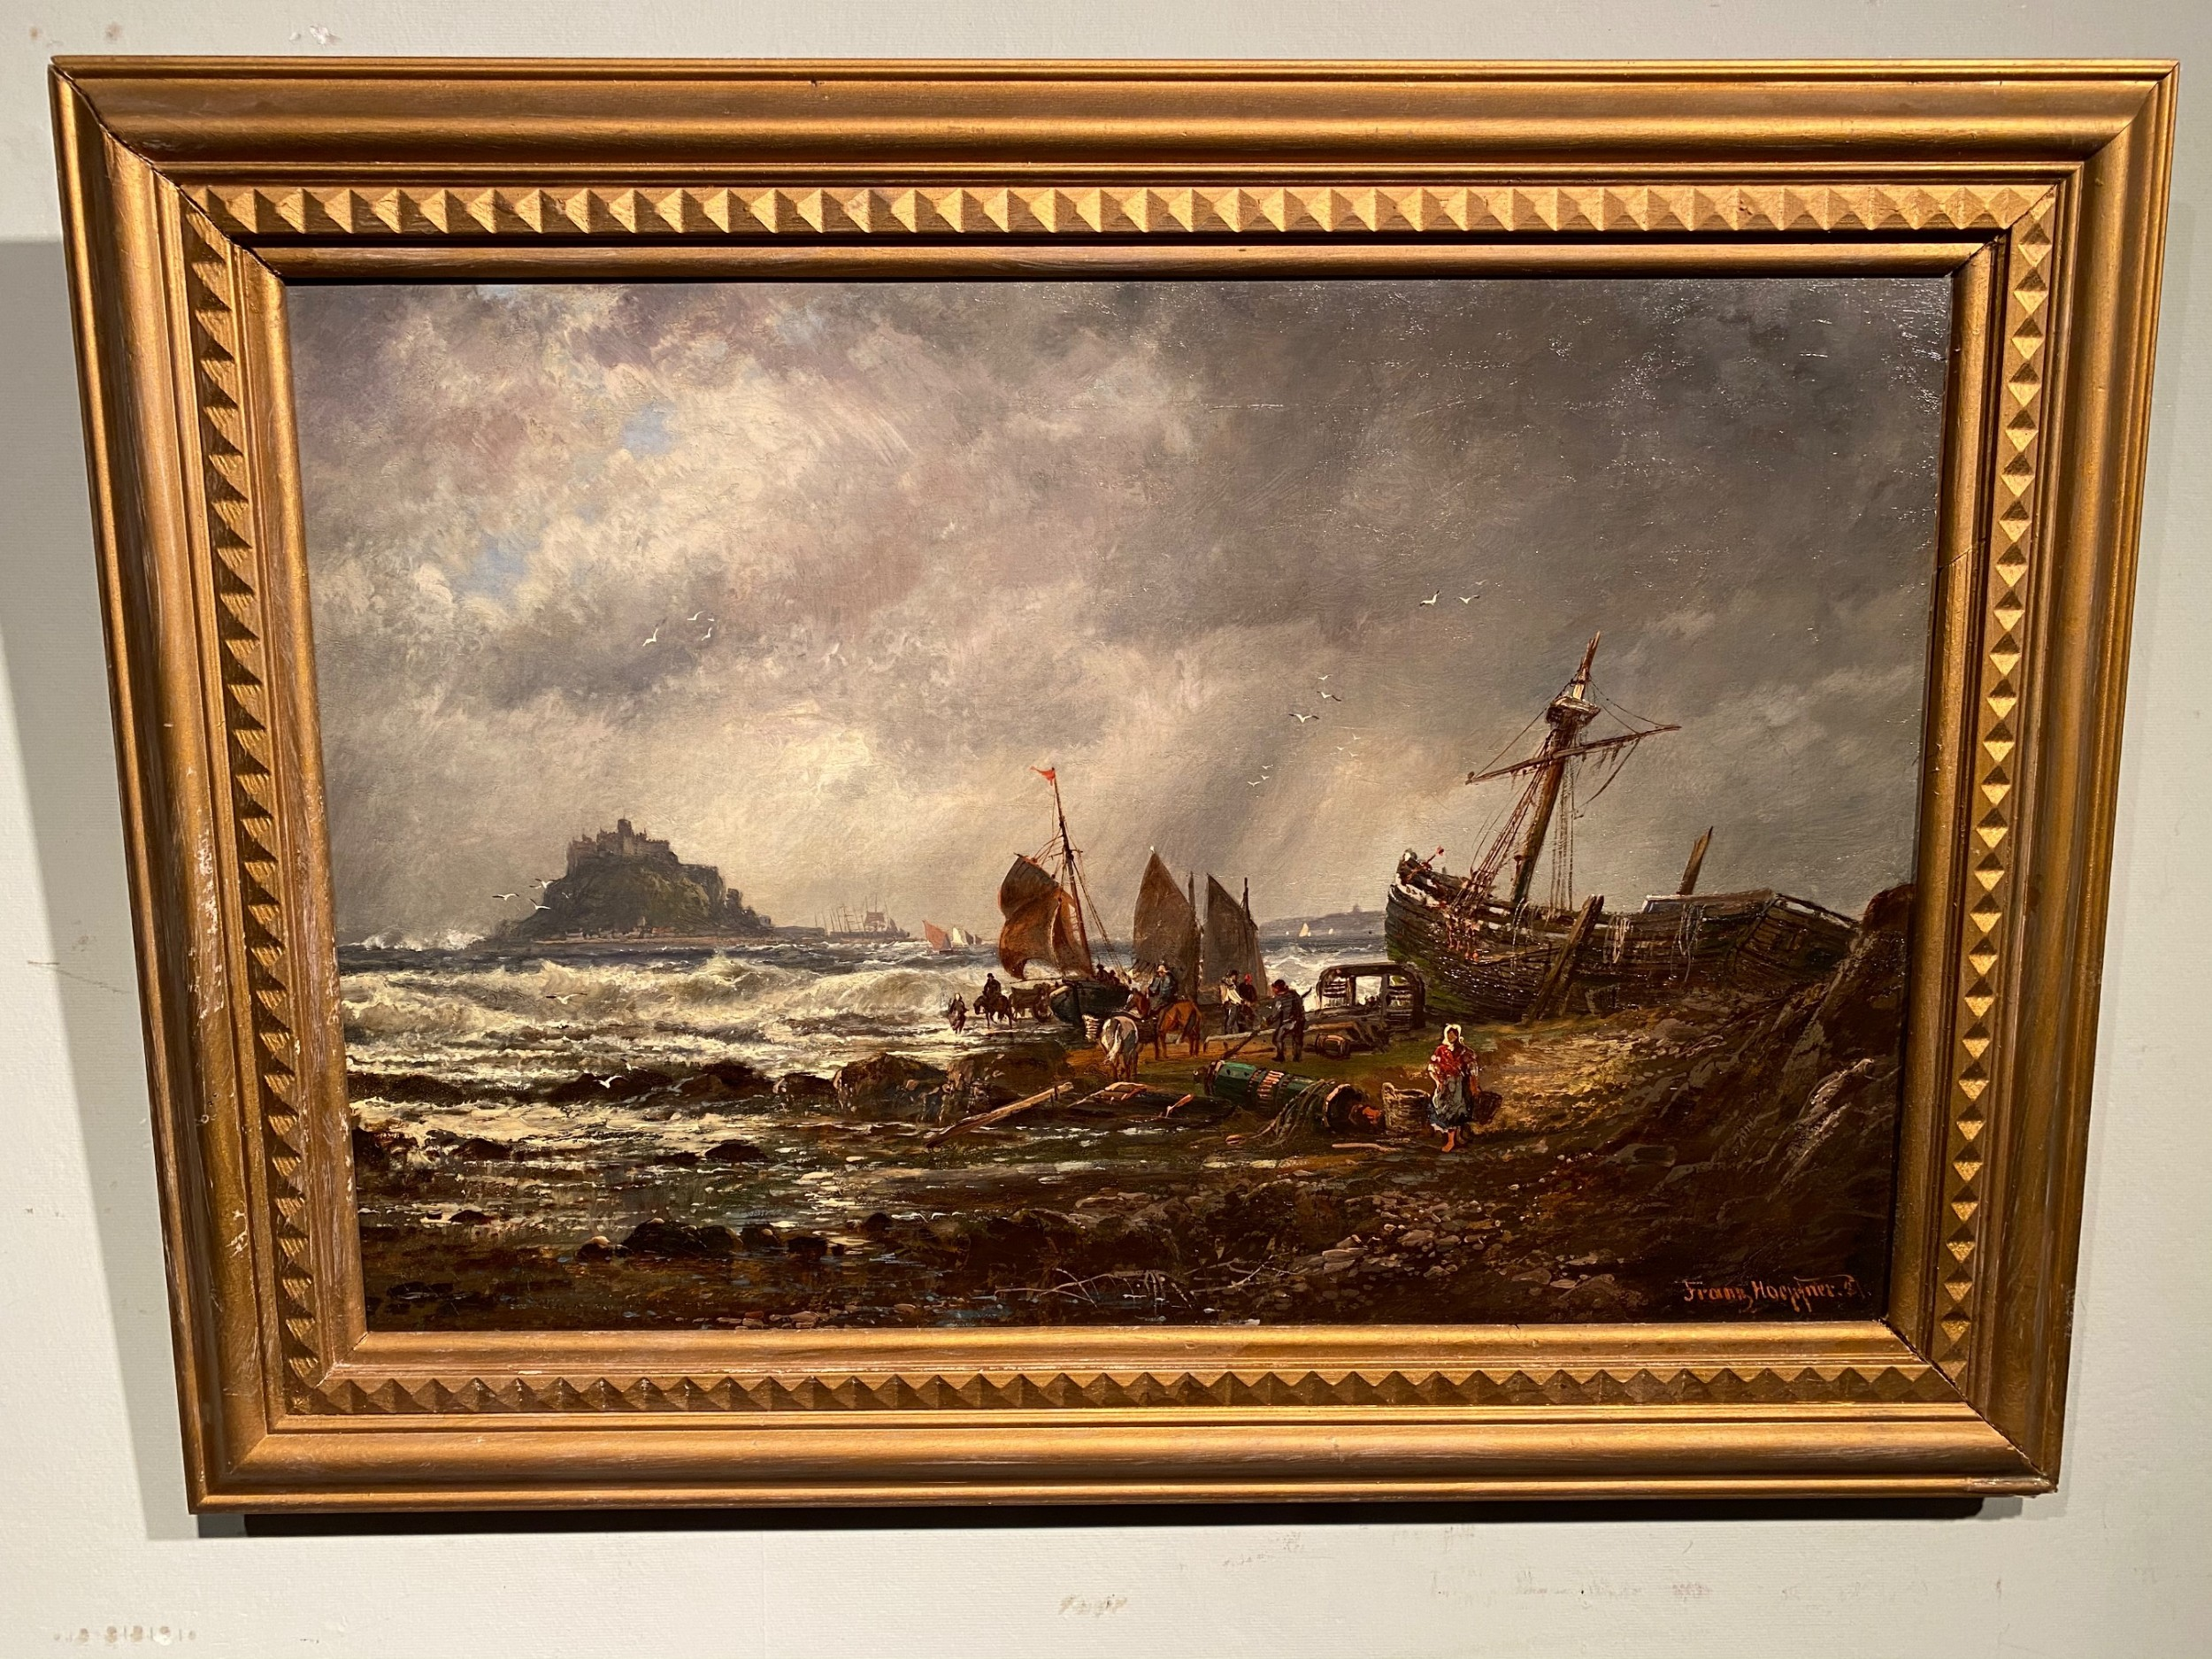 a 19th century shore scene oil on canvas by franz hoepfner